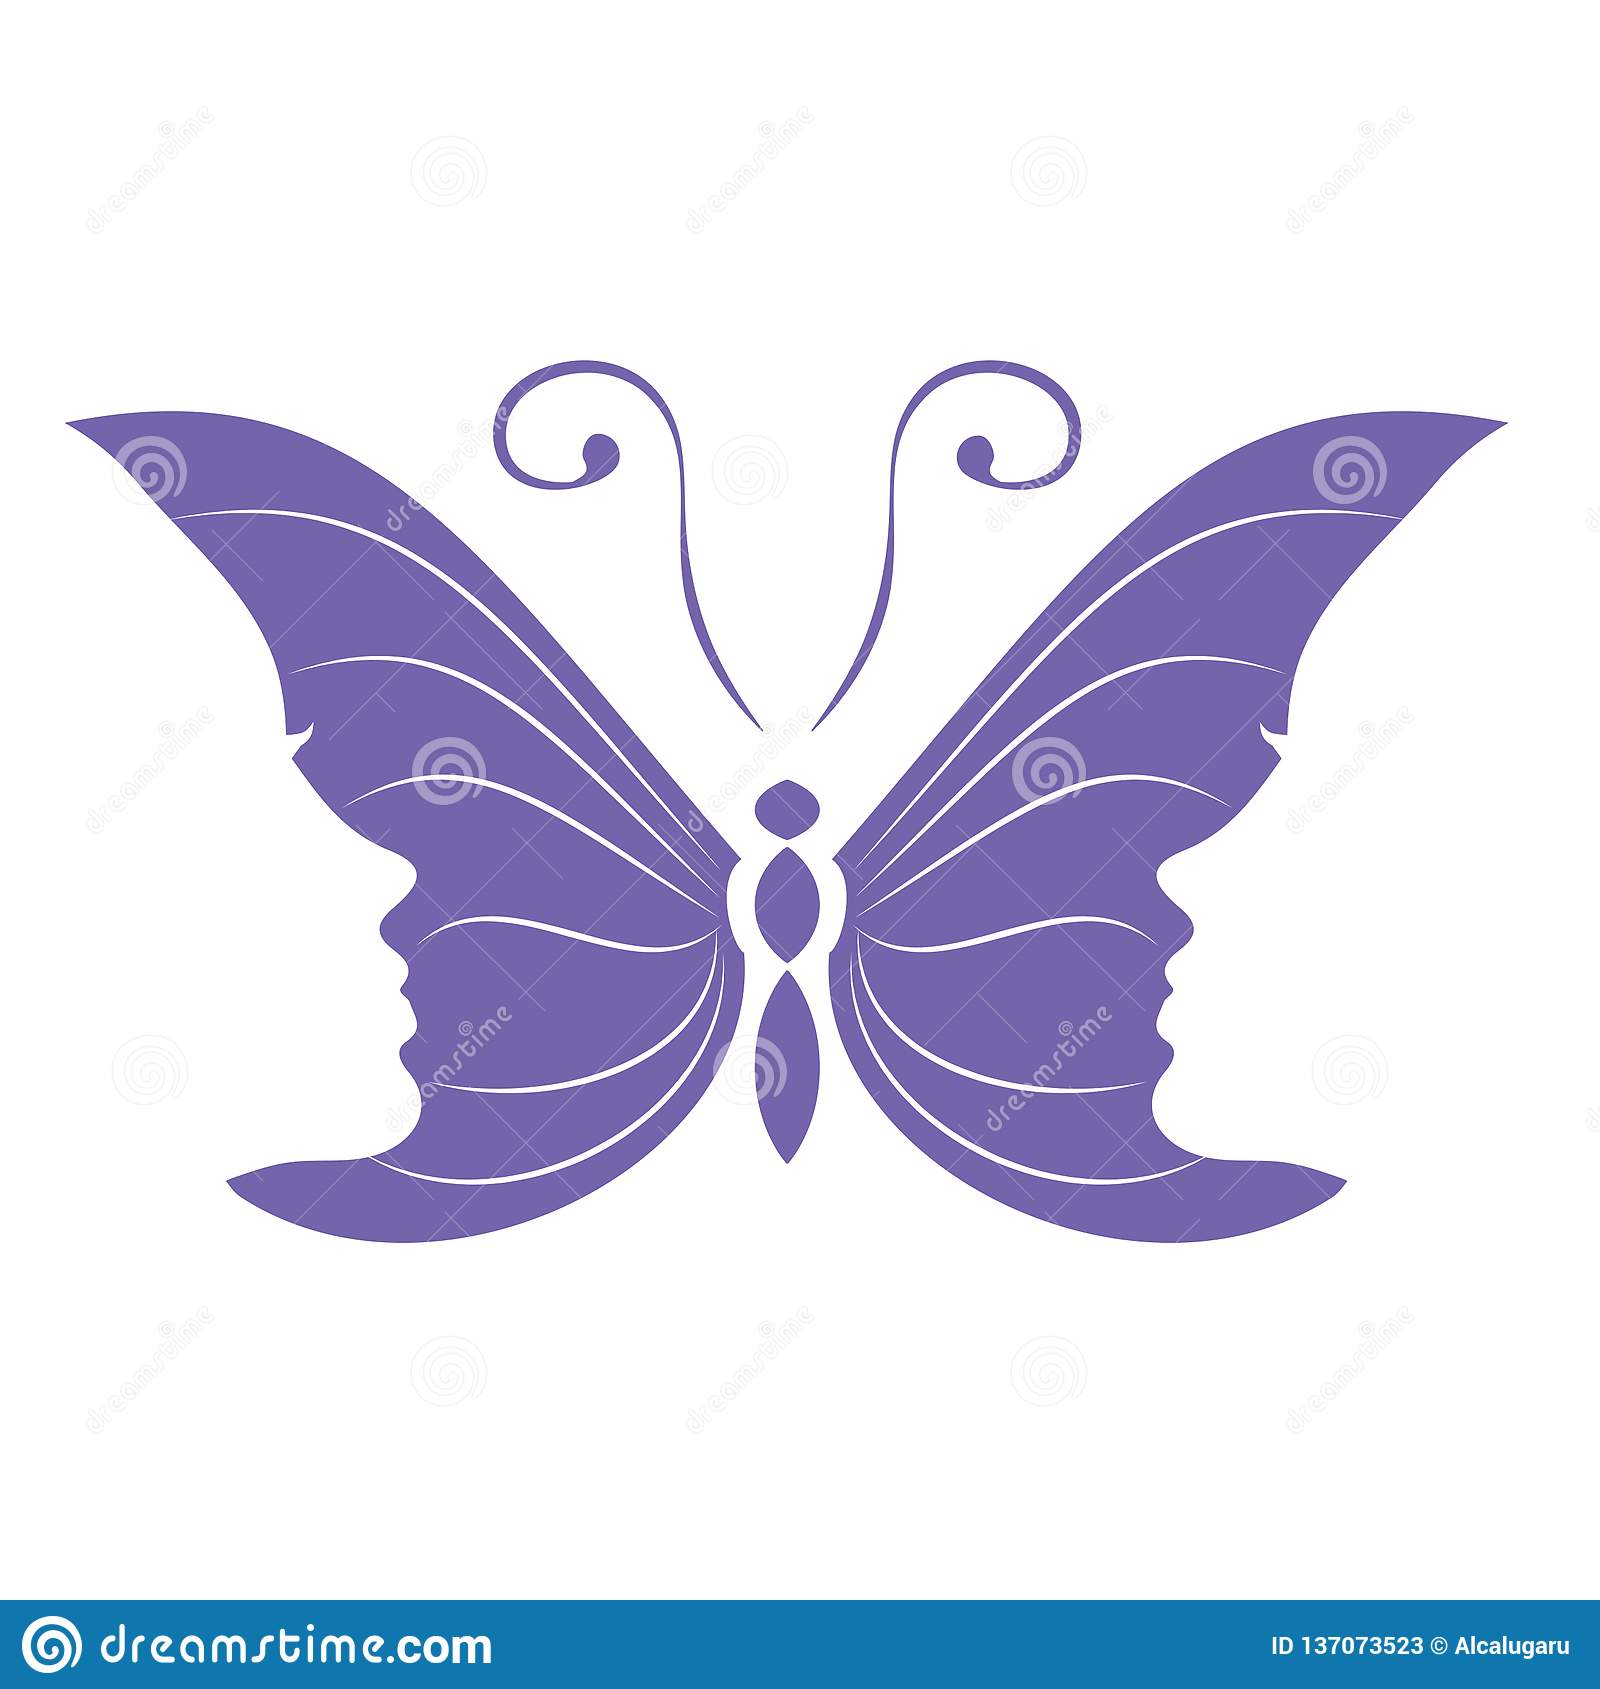 Butterfly Profile Wings Stock Illustrations 336 Butterfly Profile Wings Stock Illustrations Vectors Clipart Dreamstime